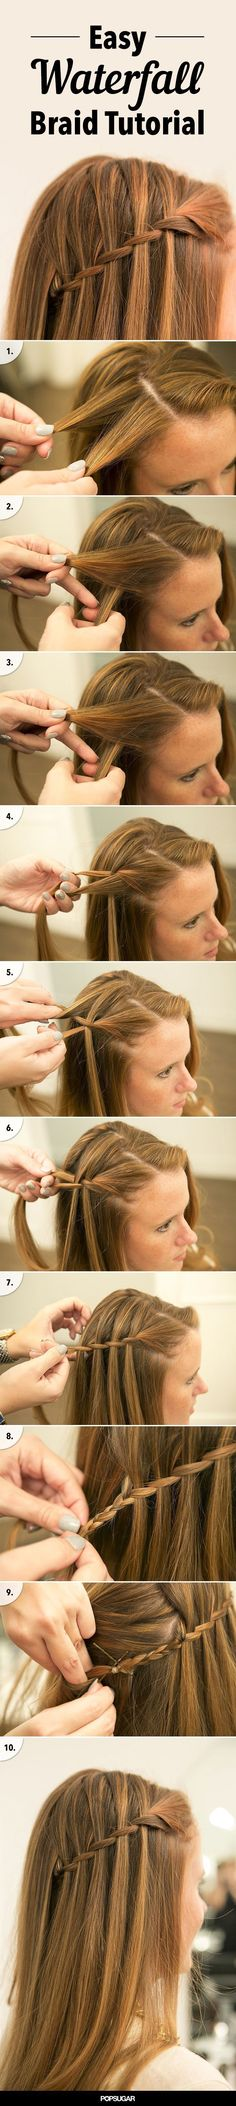 16 Easy Ways To Style Your Hair… #2 Is PERFECT For Summer. - www.lifebuzz.com/...